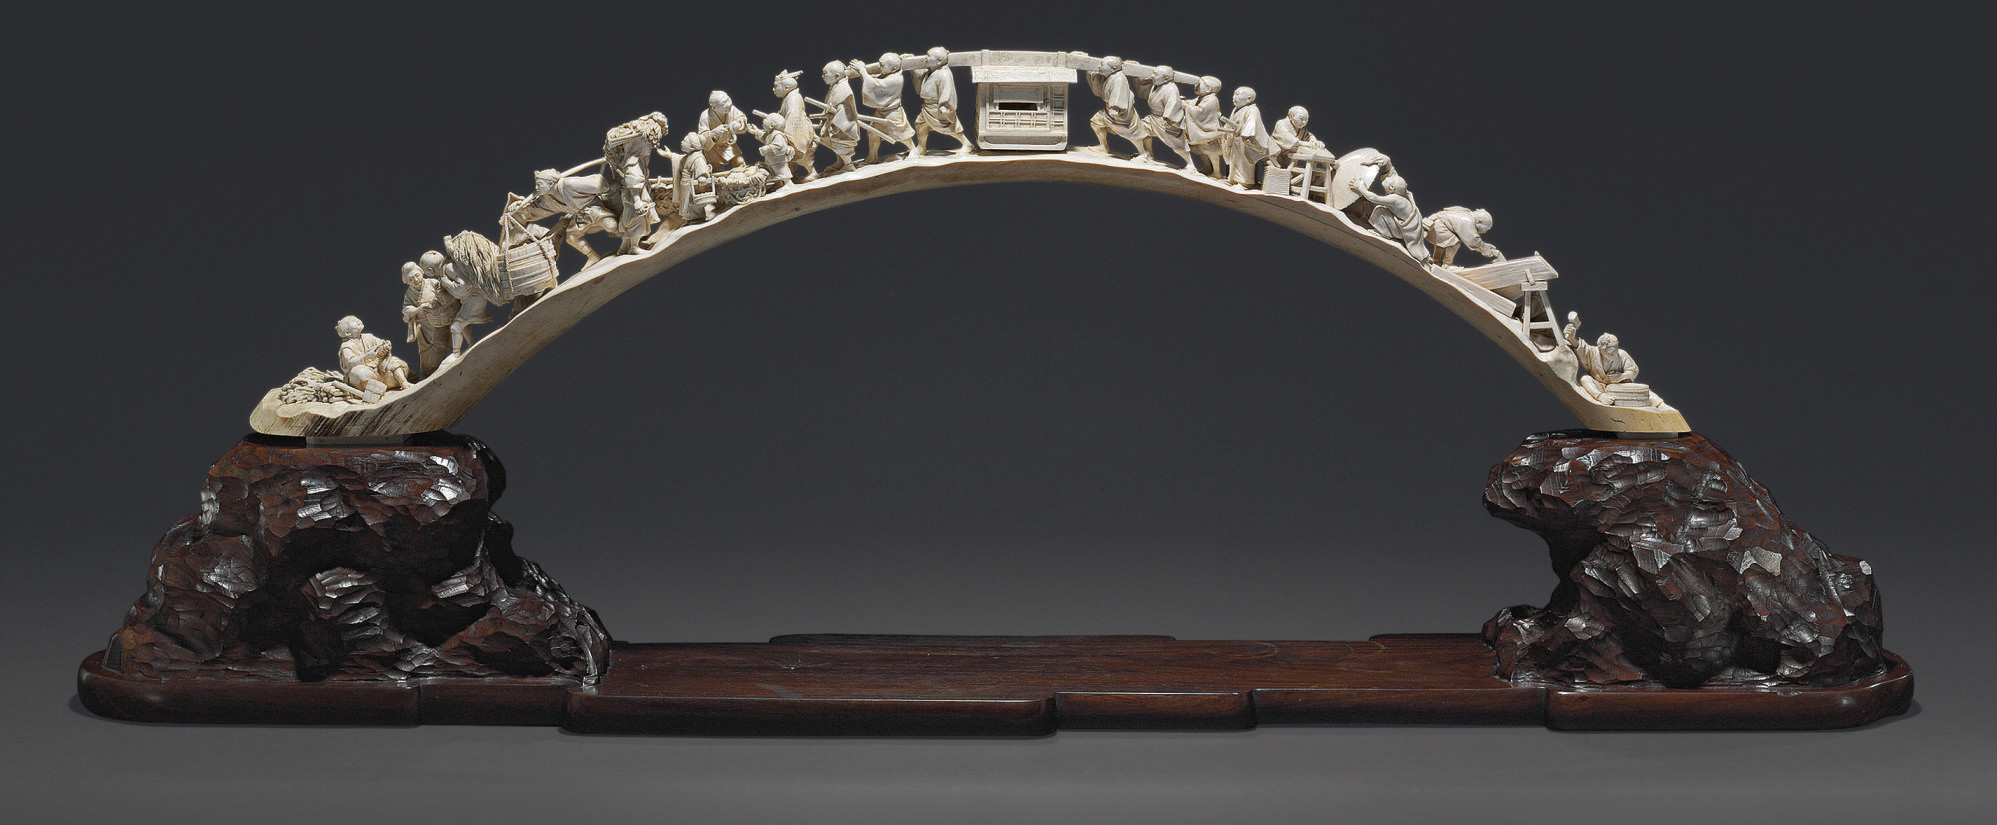 A Massive Ivory Table Ornament